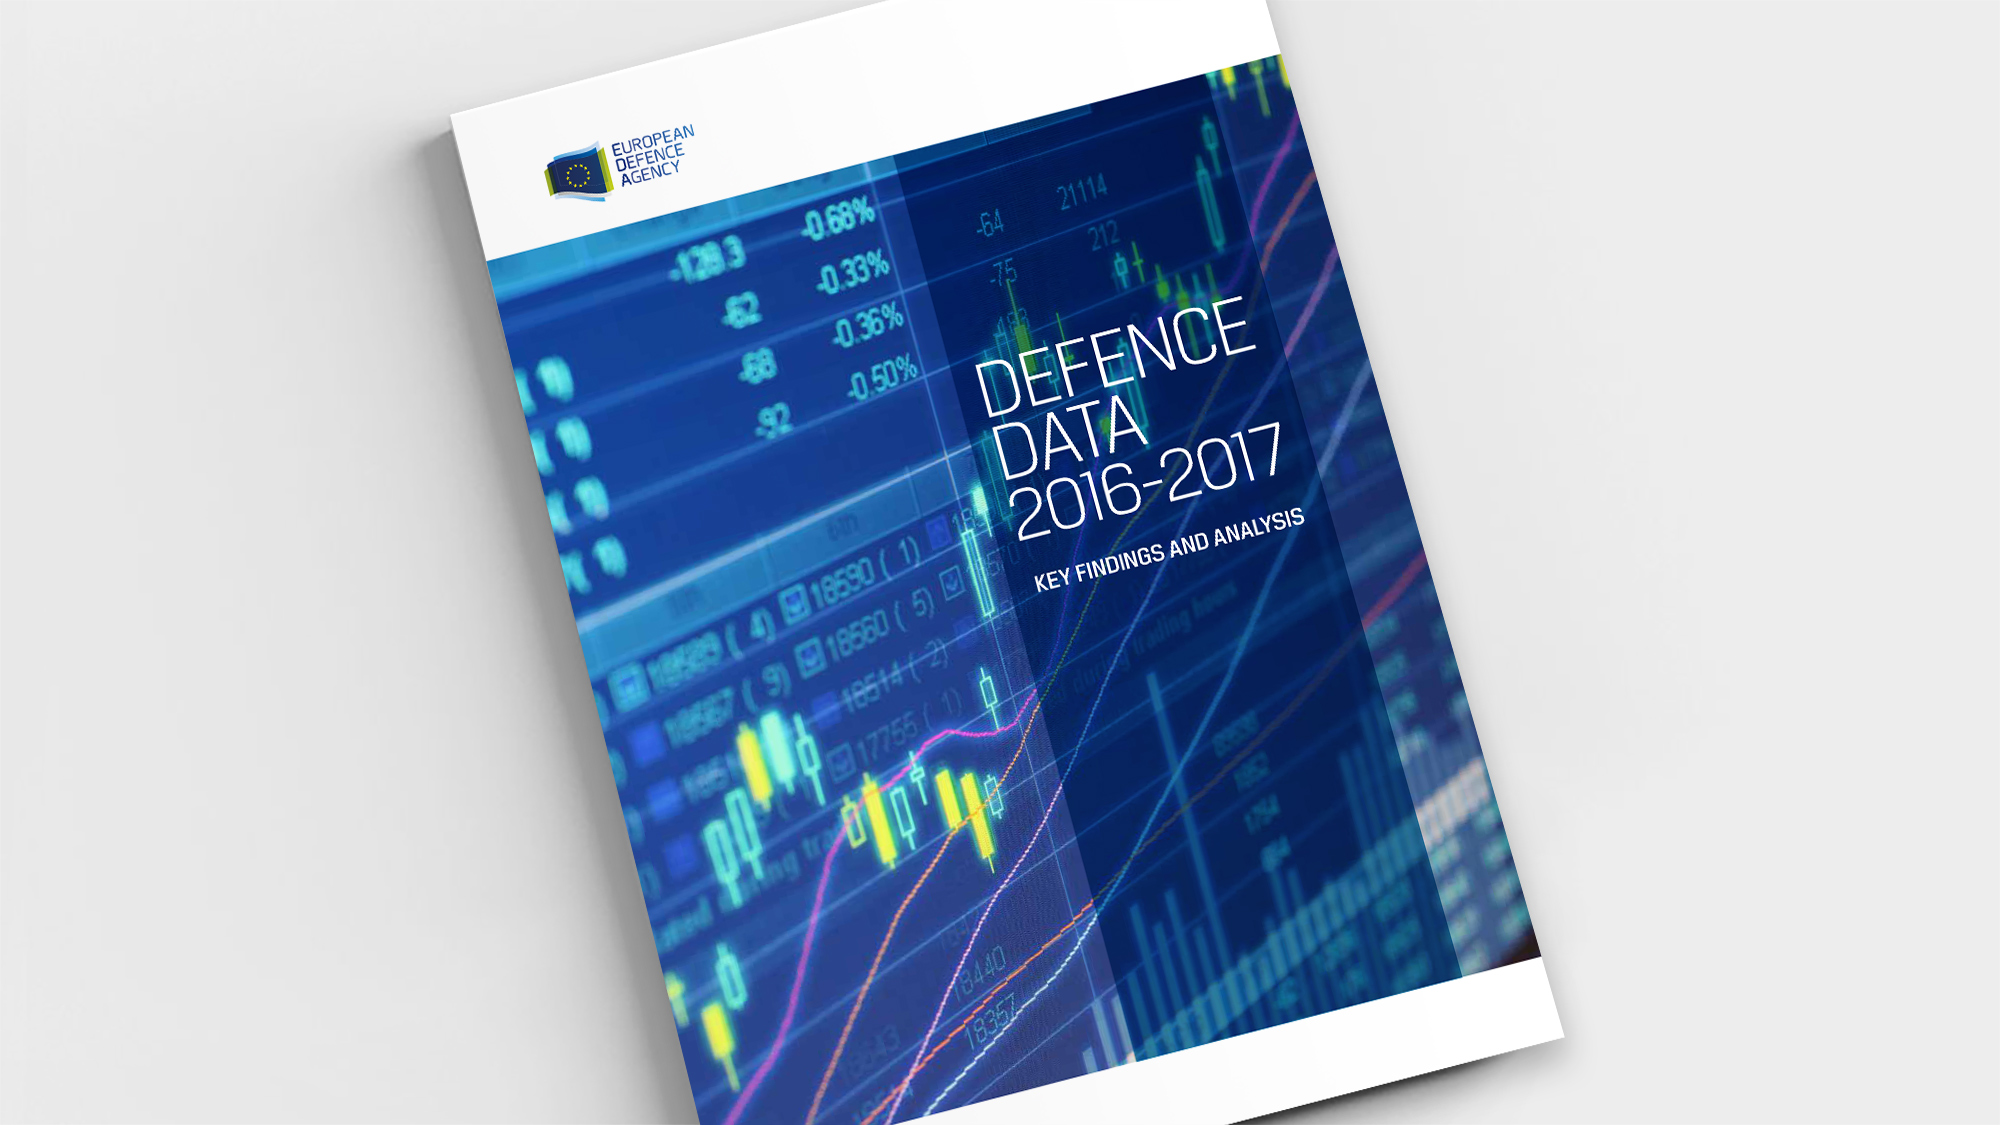 Defence Data 2016-2017